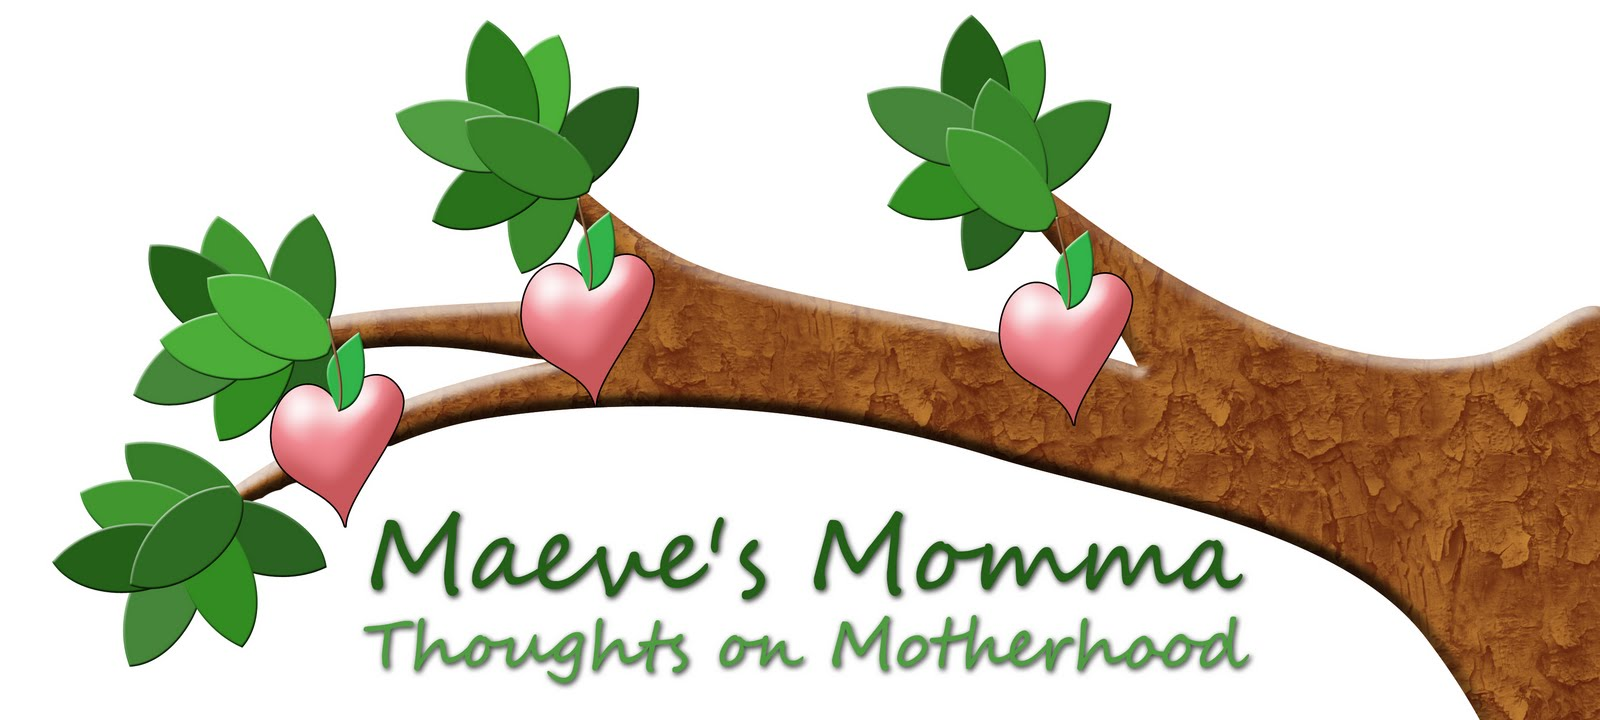 Maeve&#39;s Momma: Thoughts on Motherhood